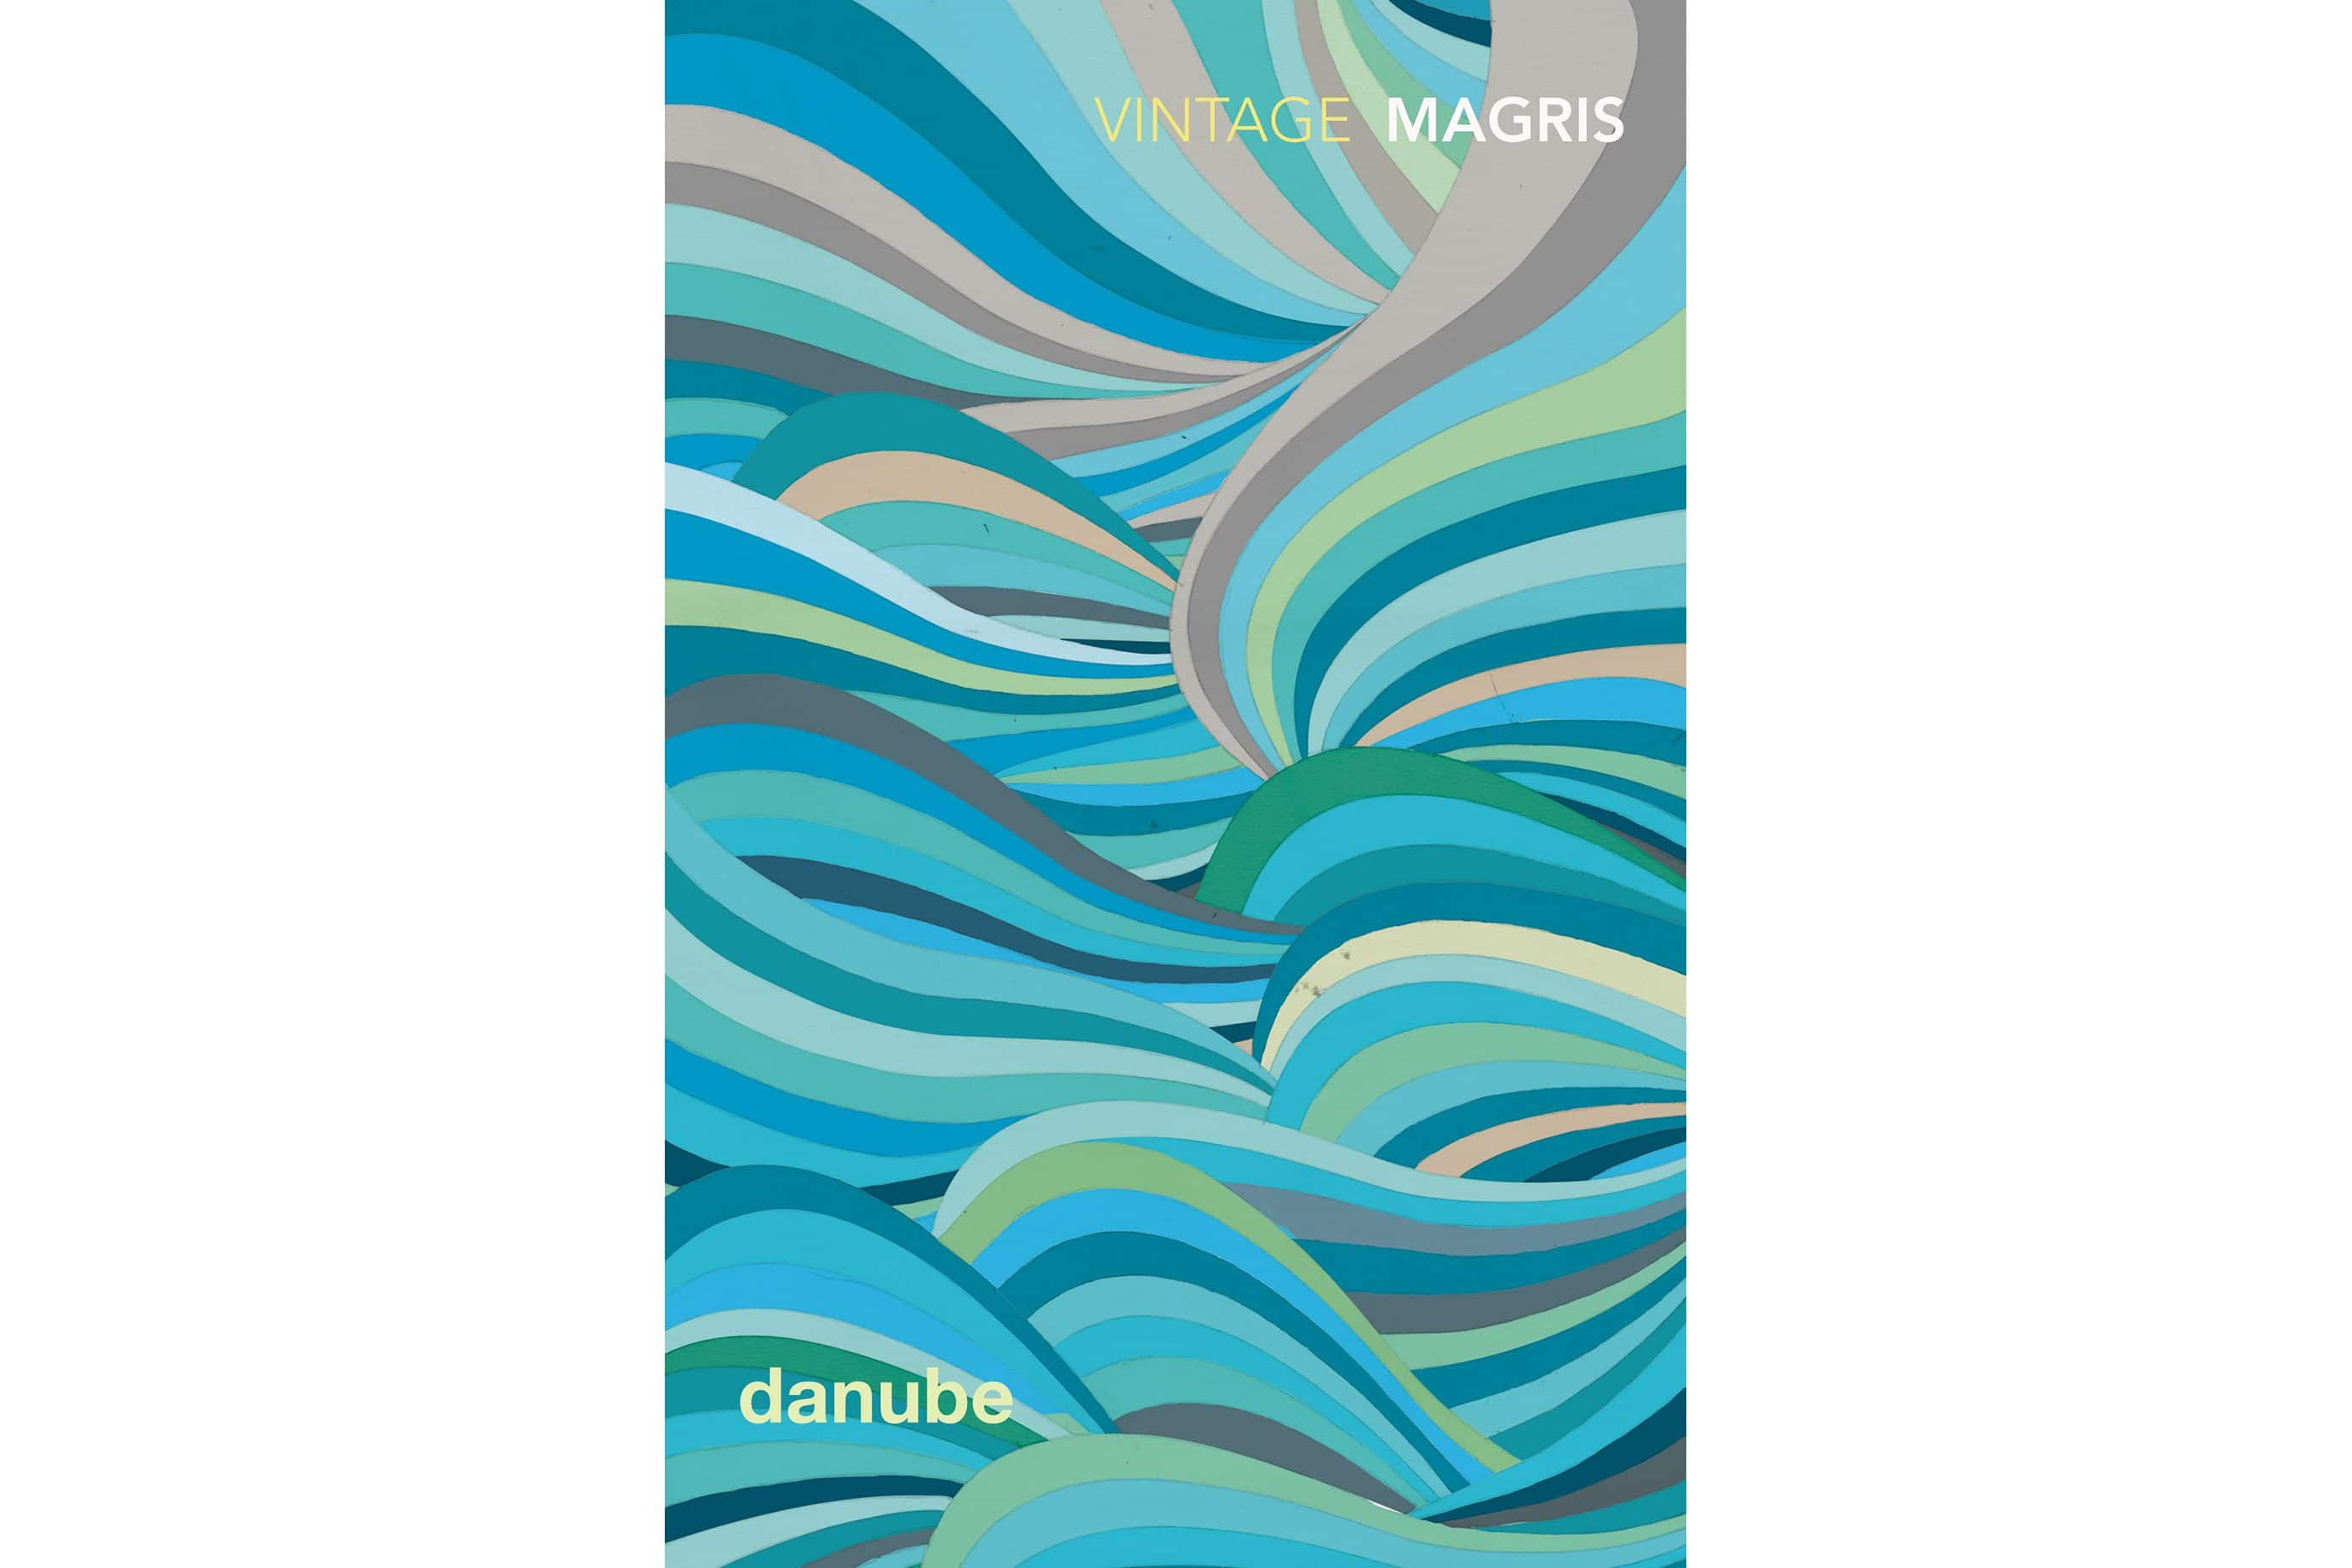 A blue spiral animation on the cover of Danube